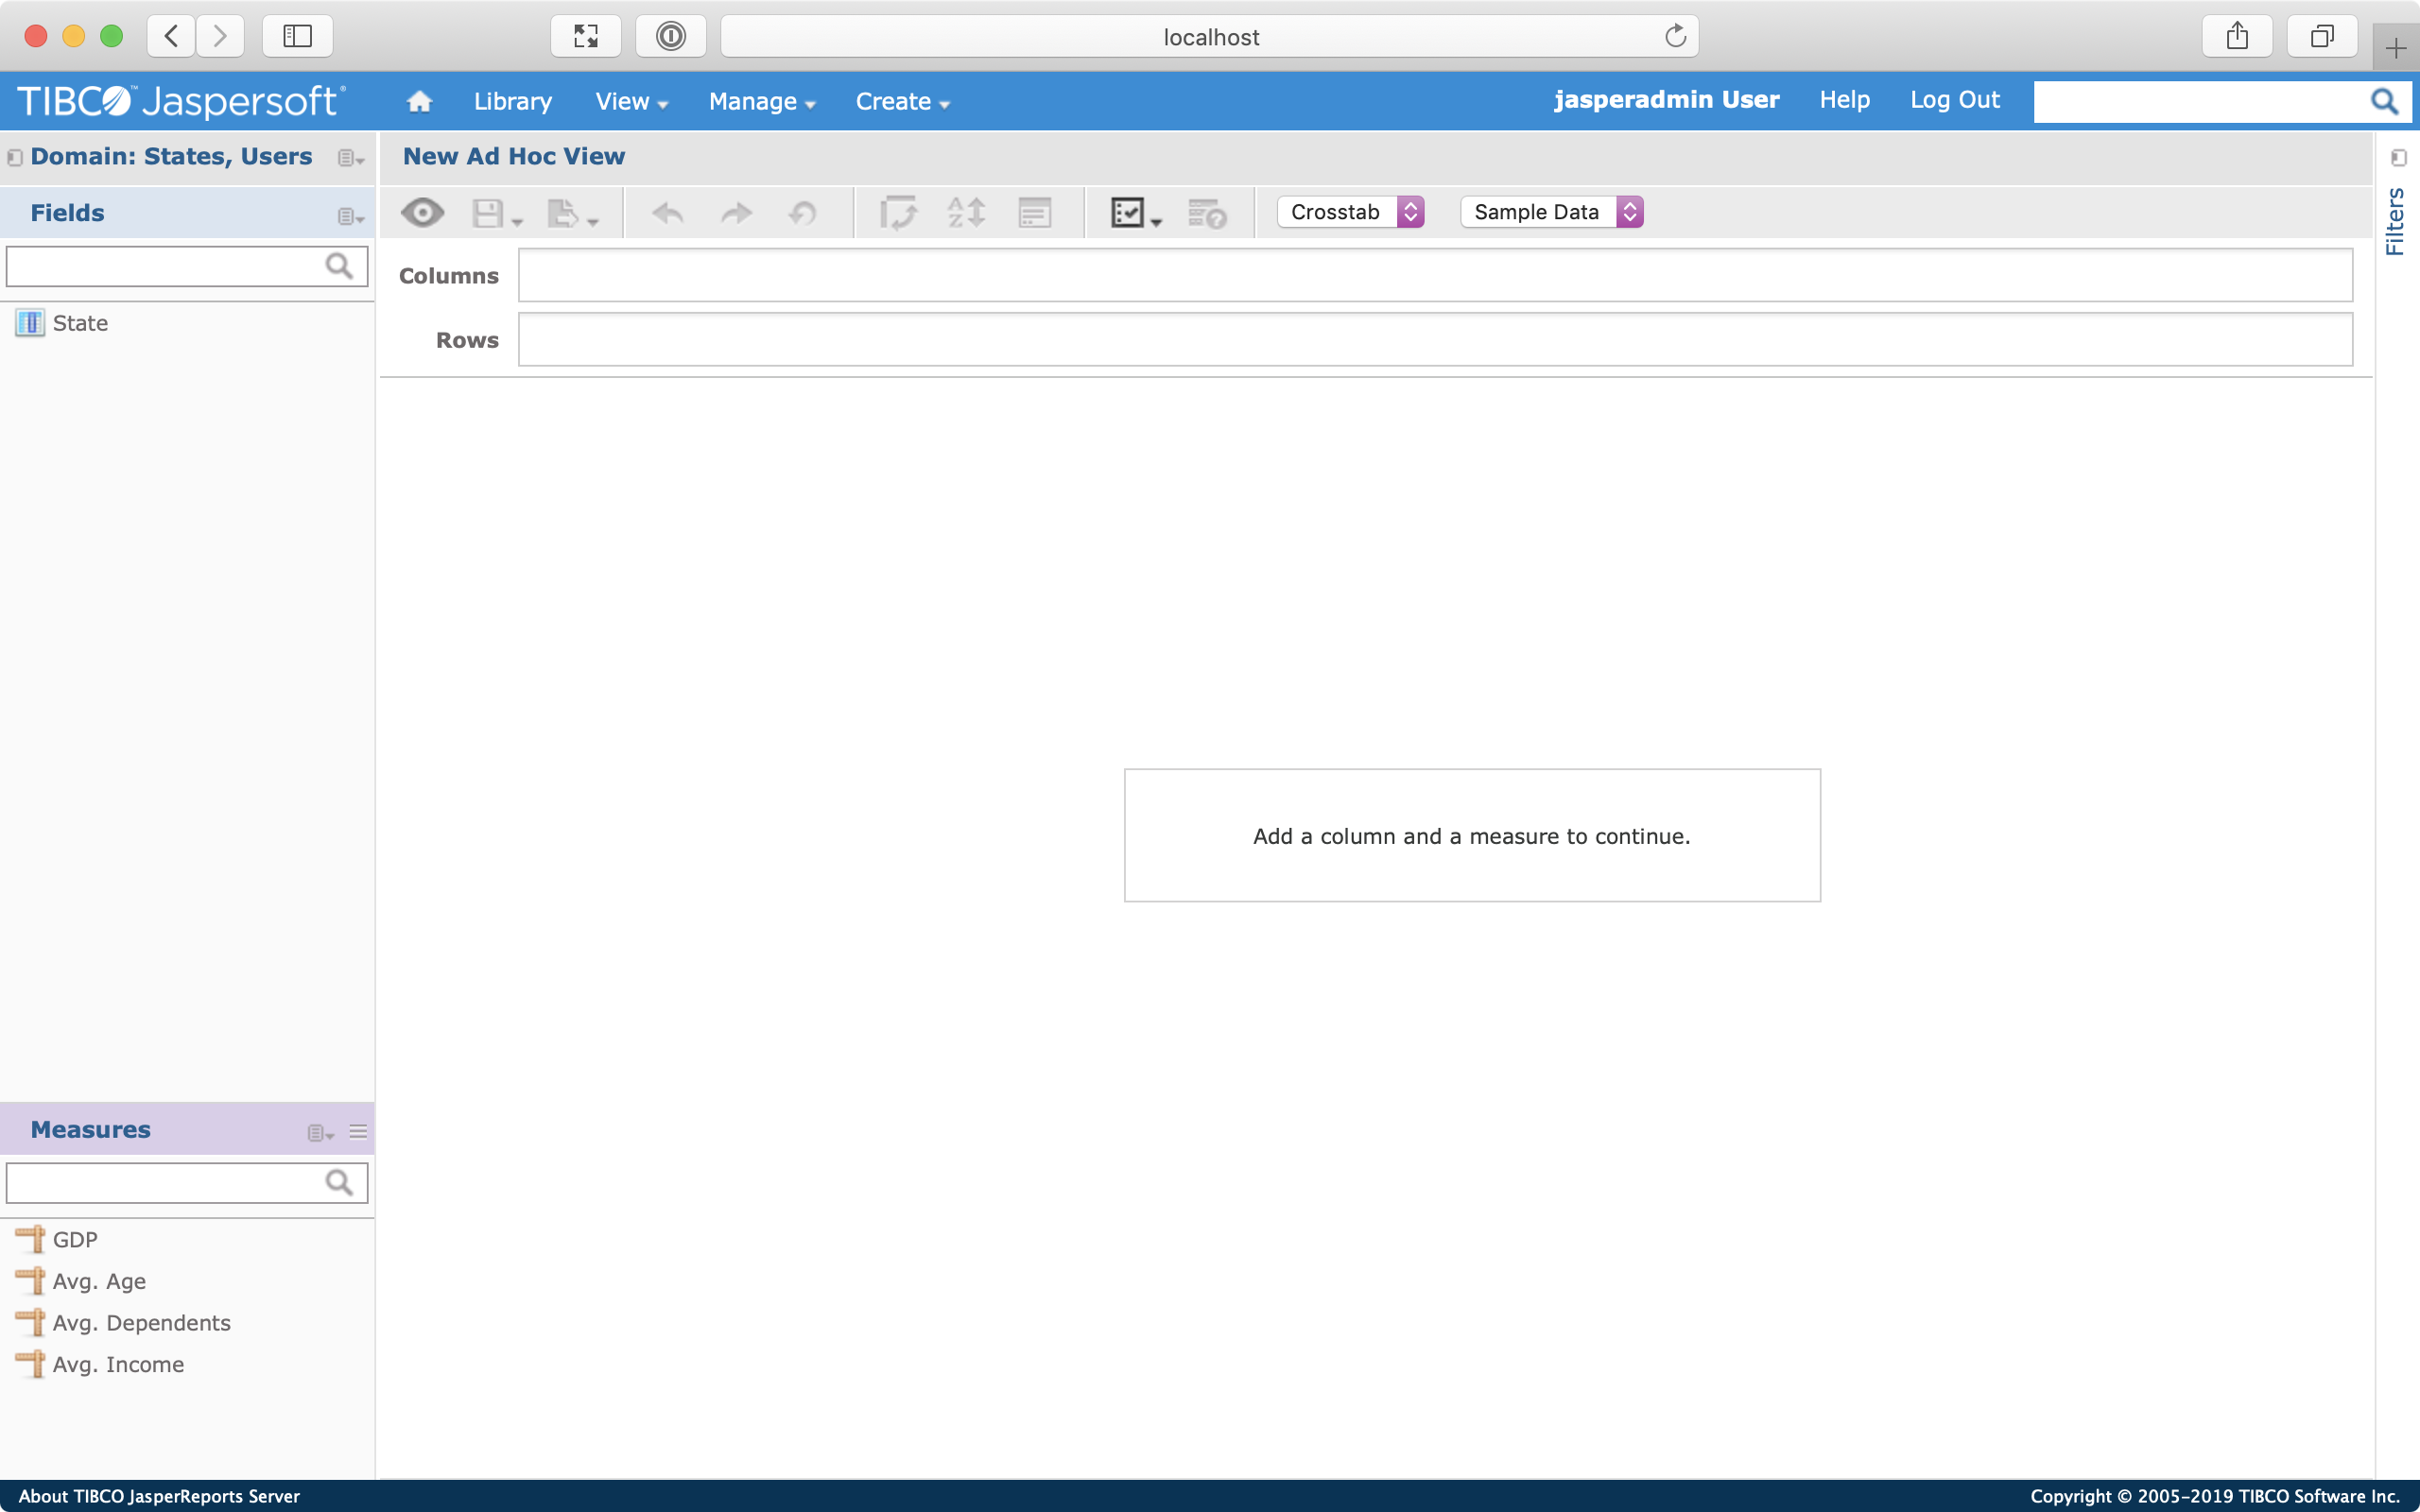 Screenshot of the New Ad Hoc View screen